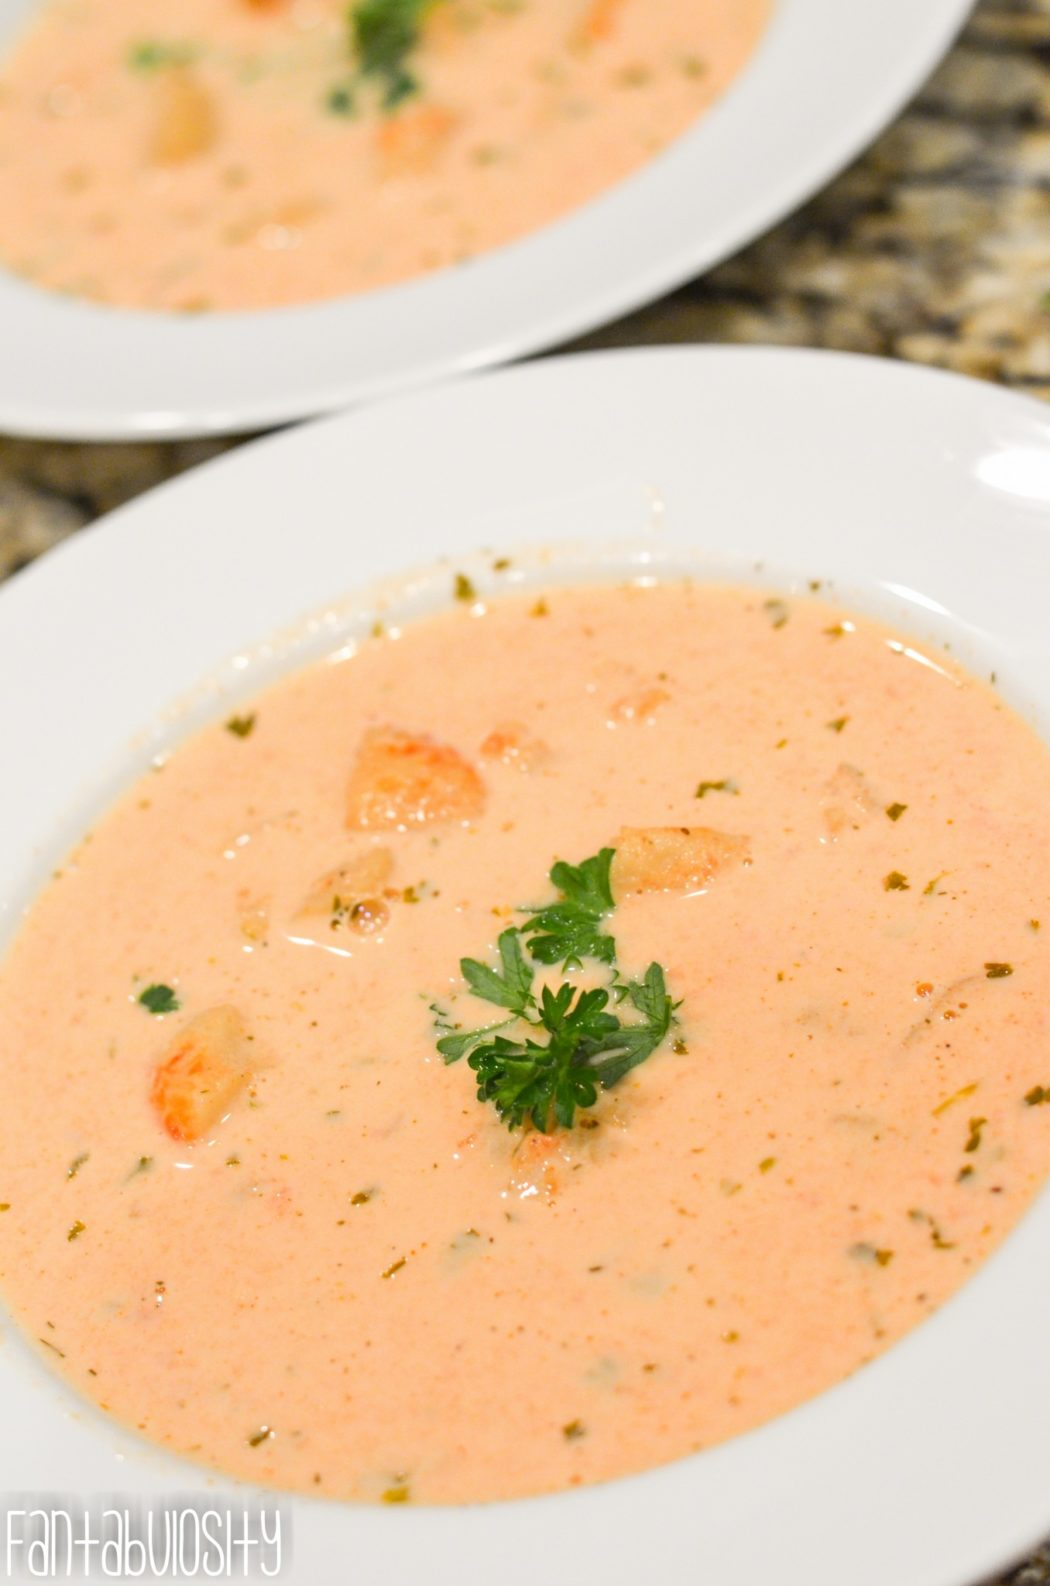 Easy Lobster Bisque Recipe - A Creamy Soup Made Easy - Fantabulosity